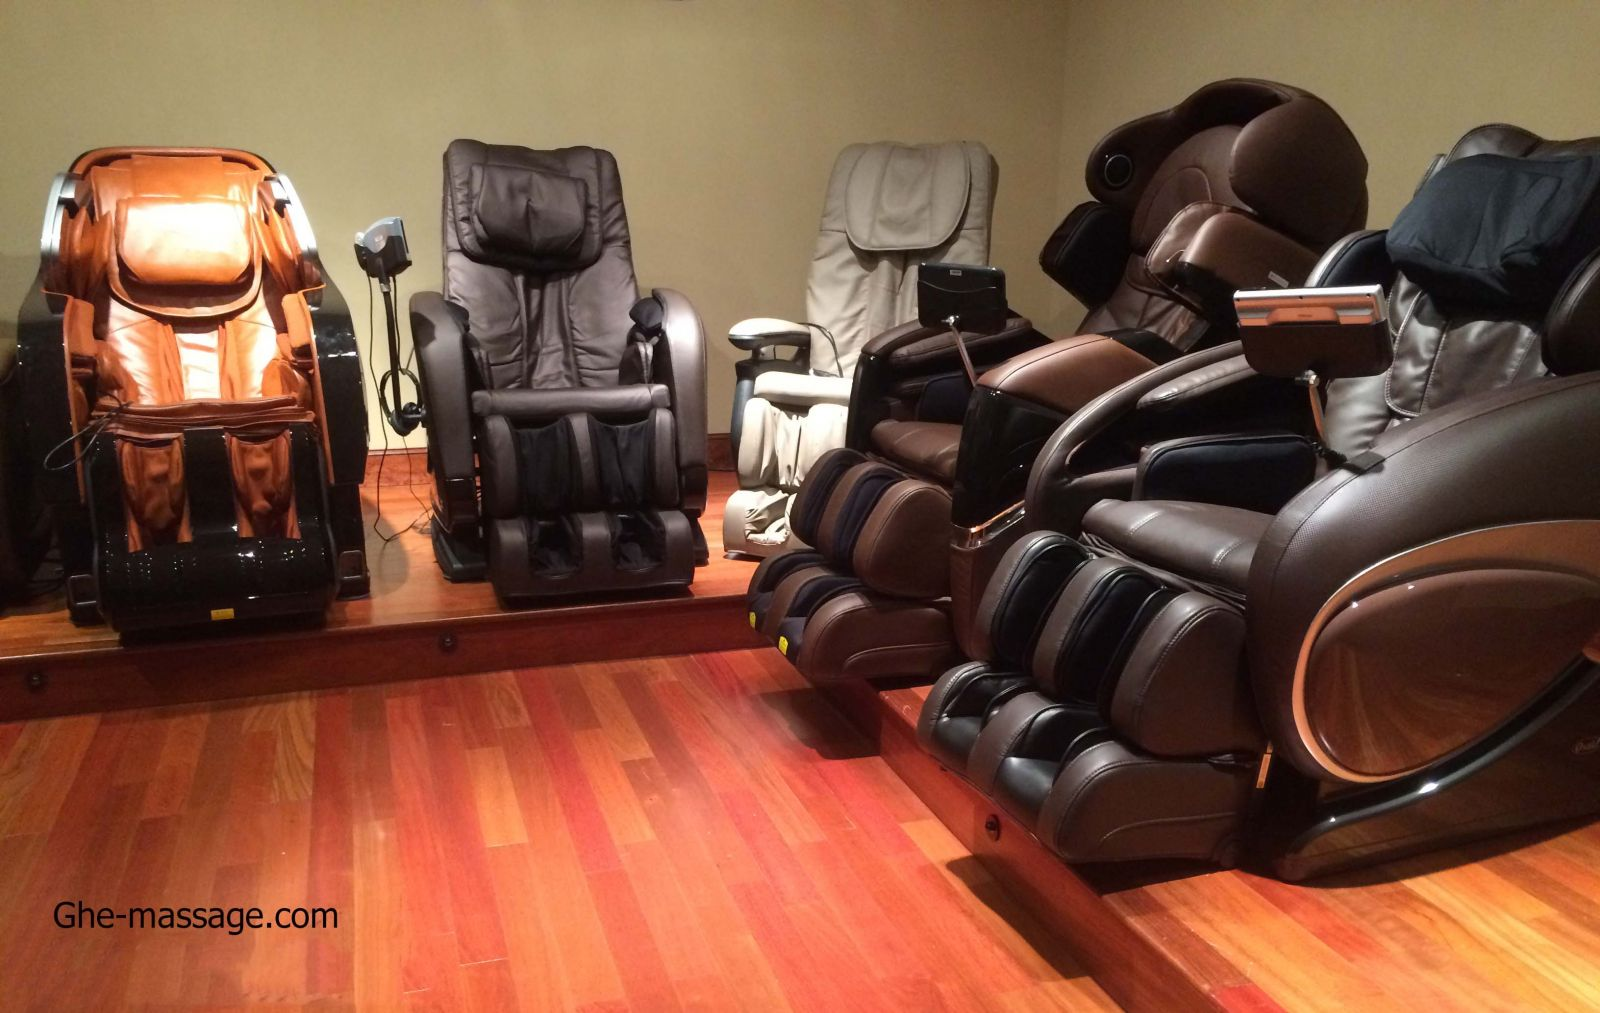 showroom ghe massage